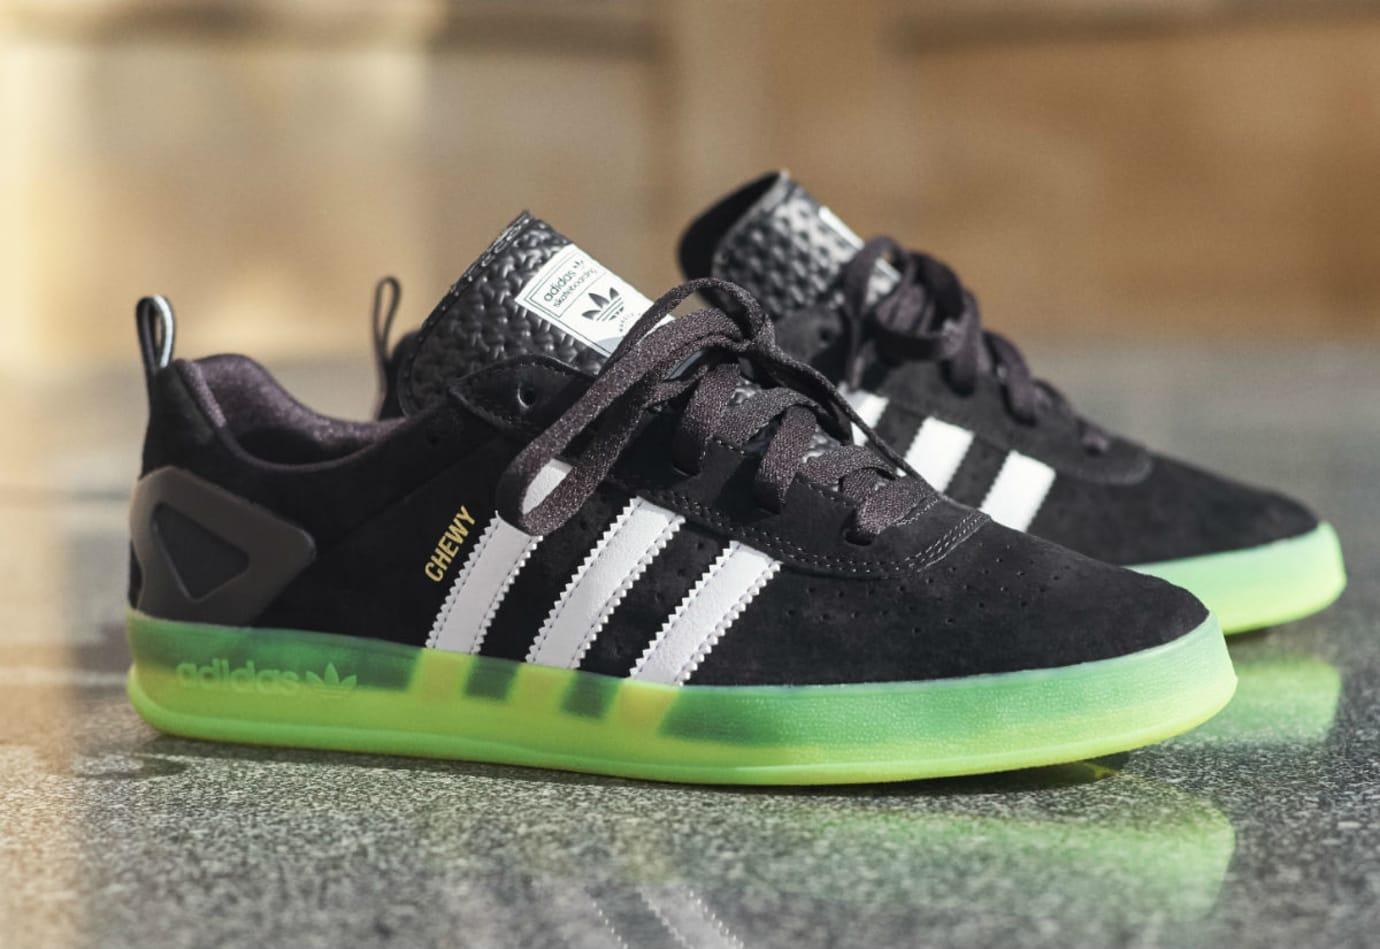 Adidas Palace Pro Chewy Cannon Release Date (2)